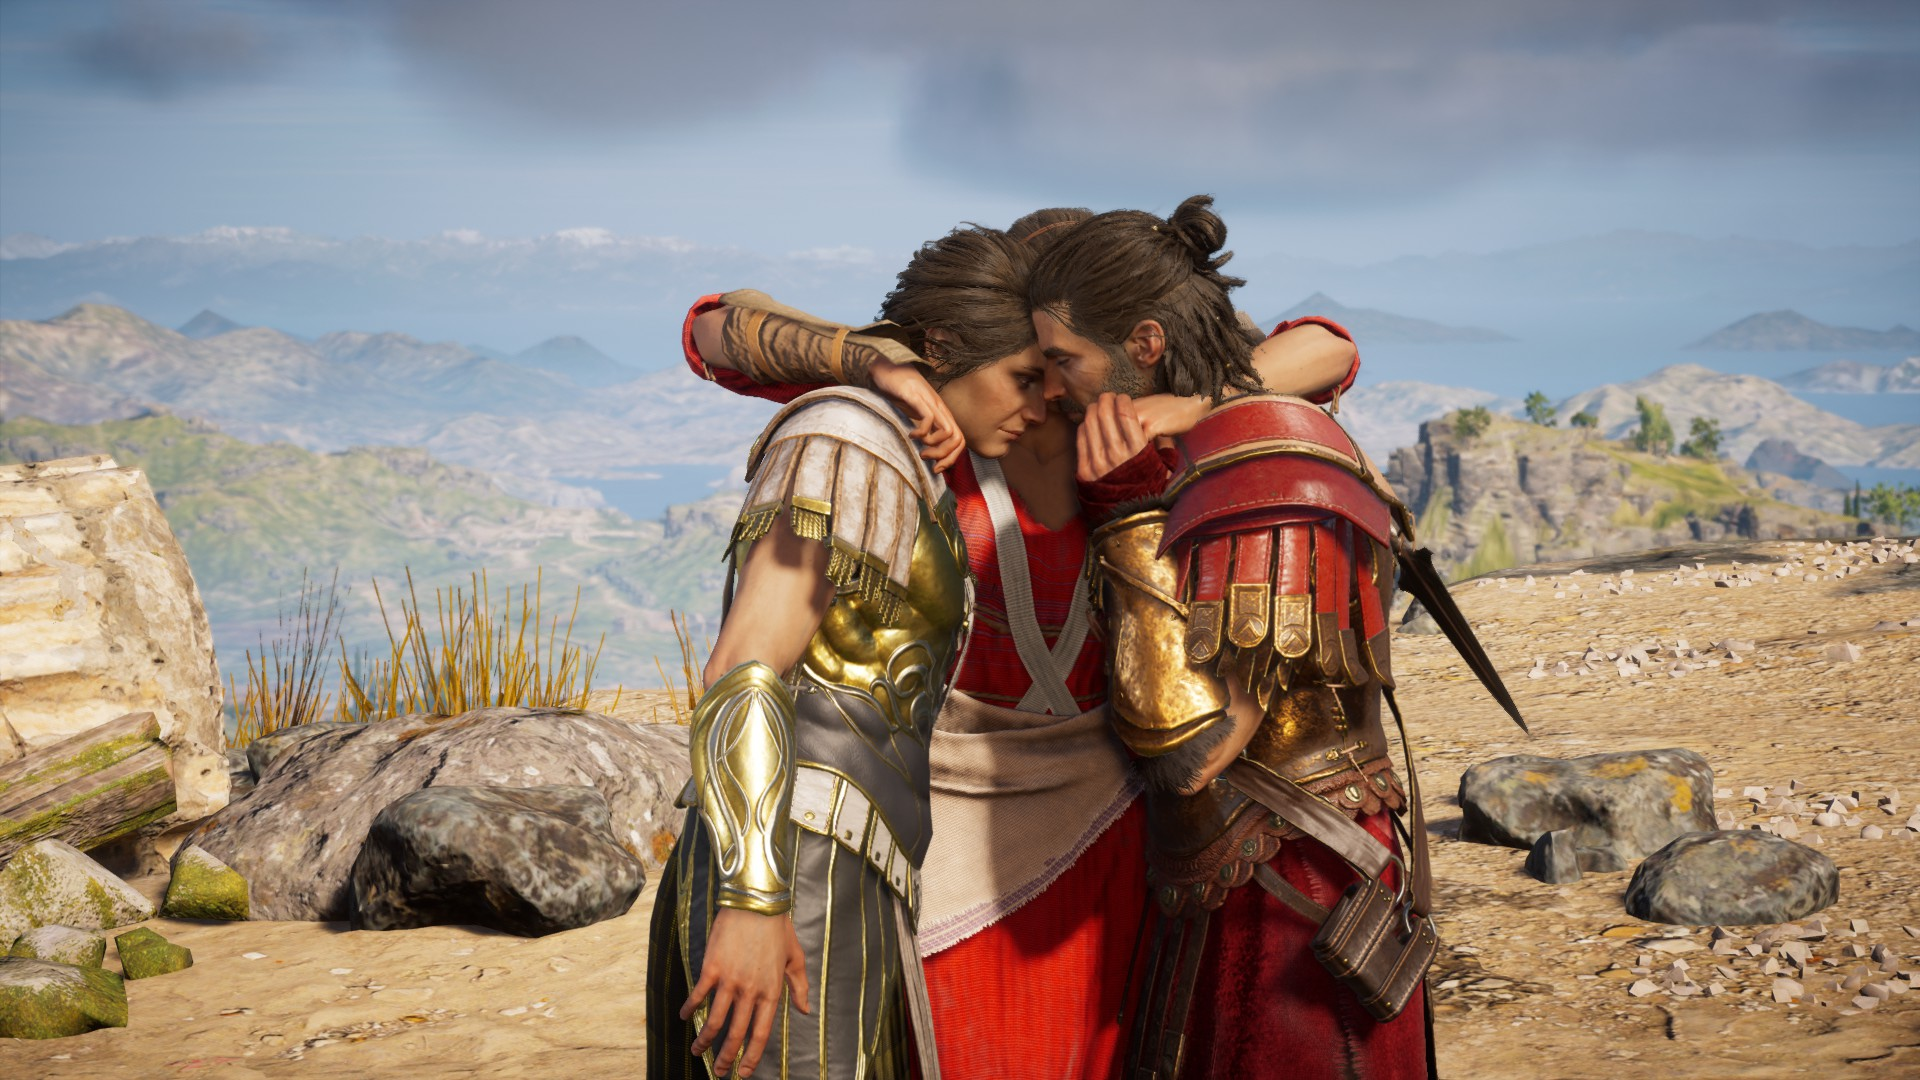 20181102233839_1.jpg - Assassin's Creed: Odyssey